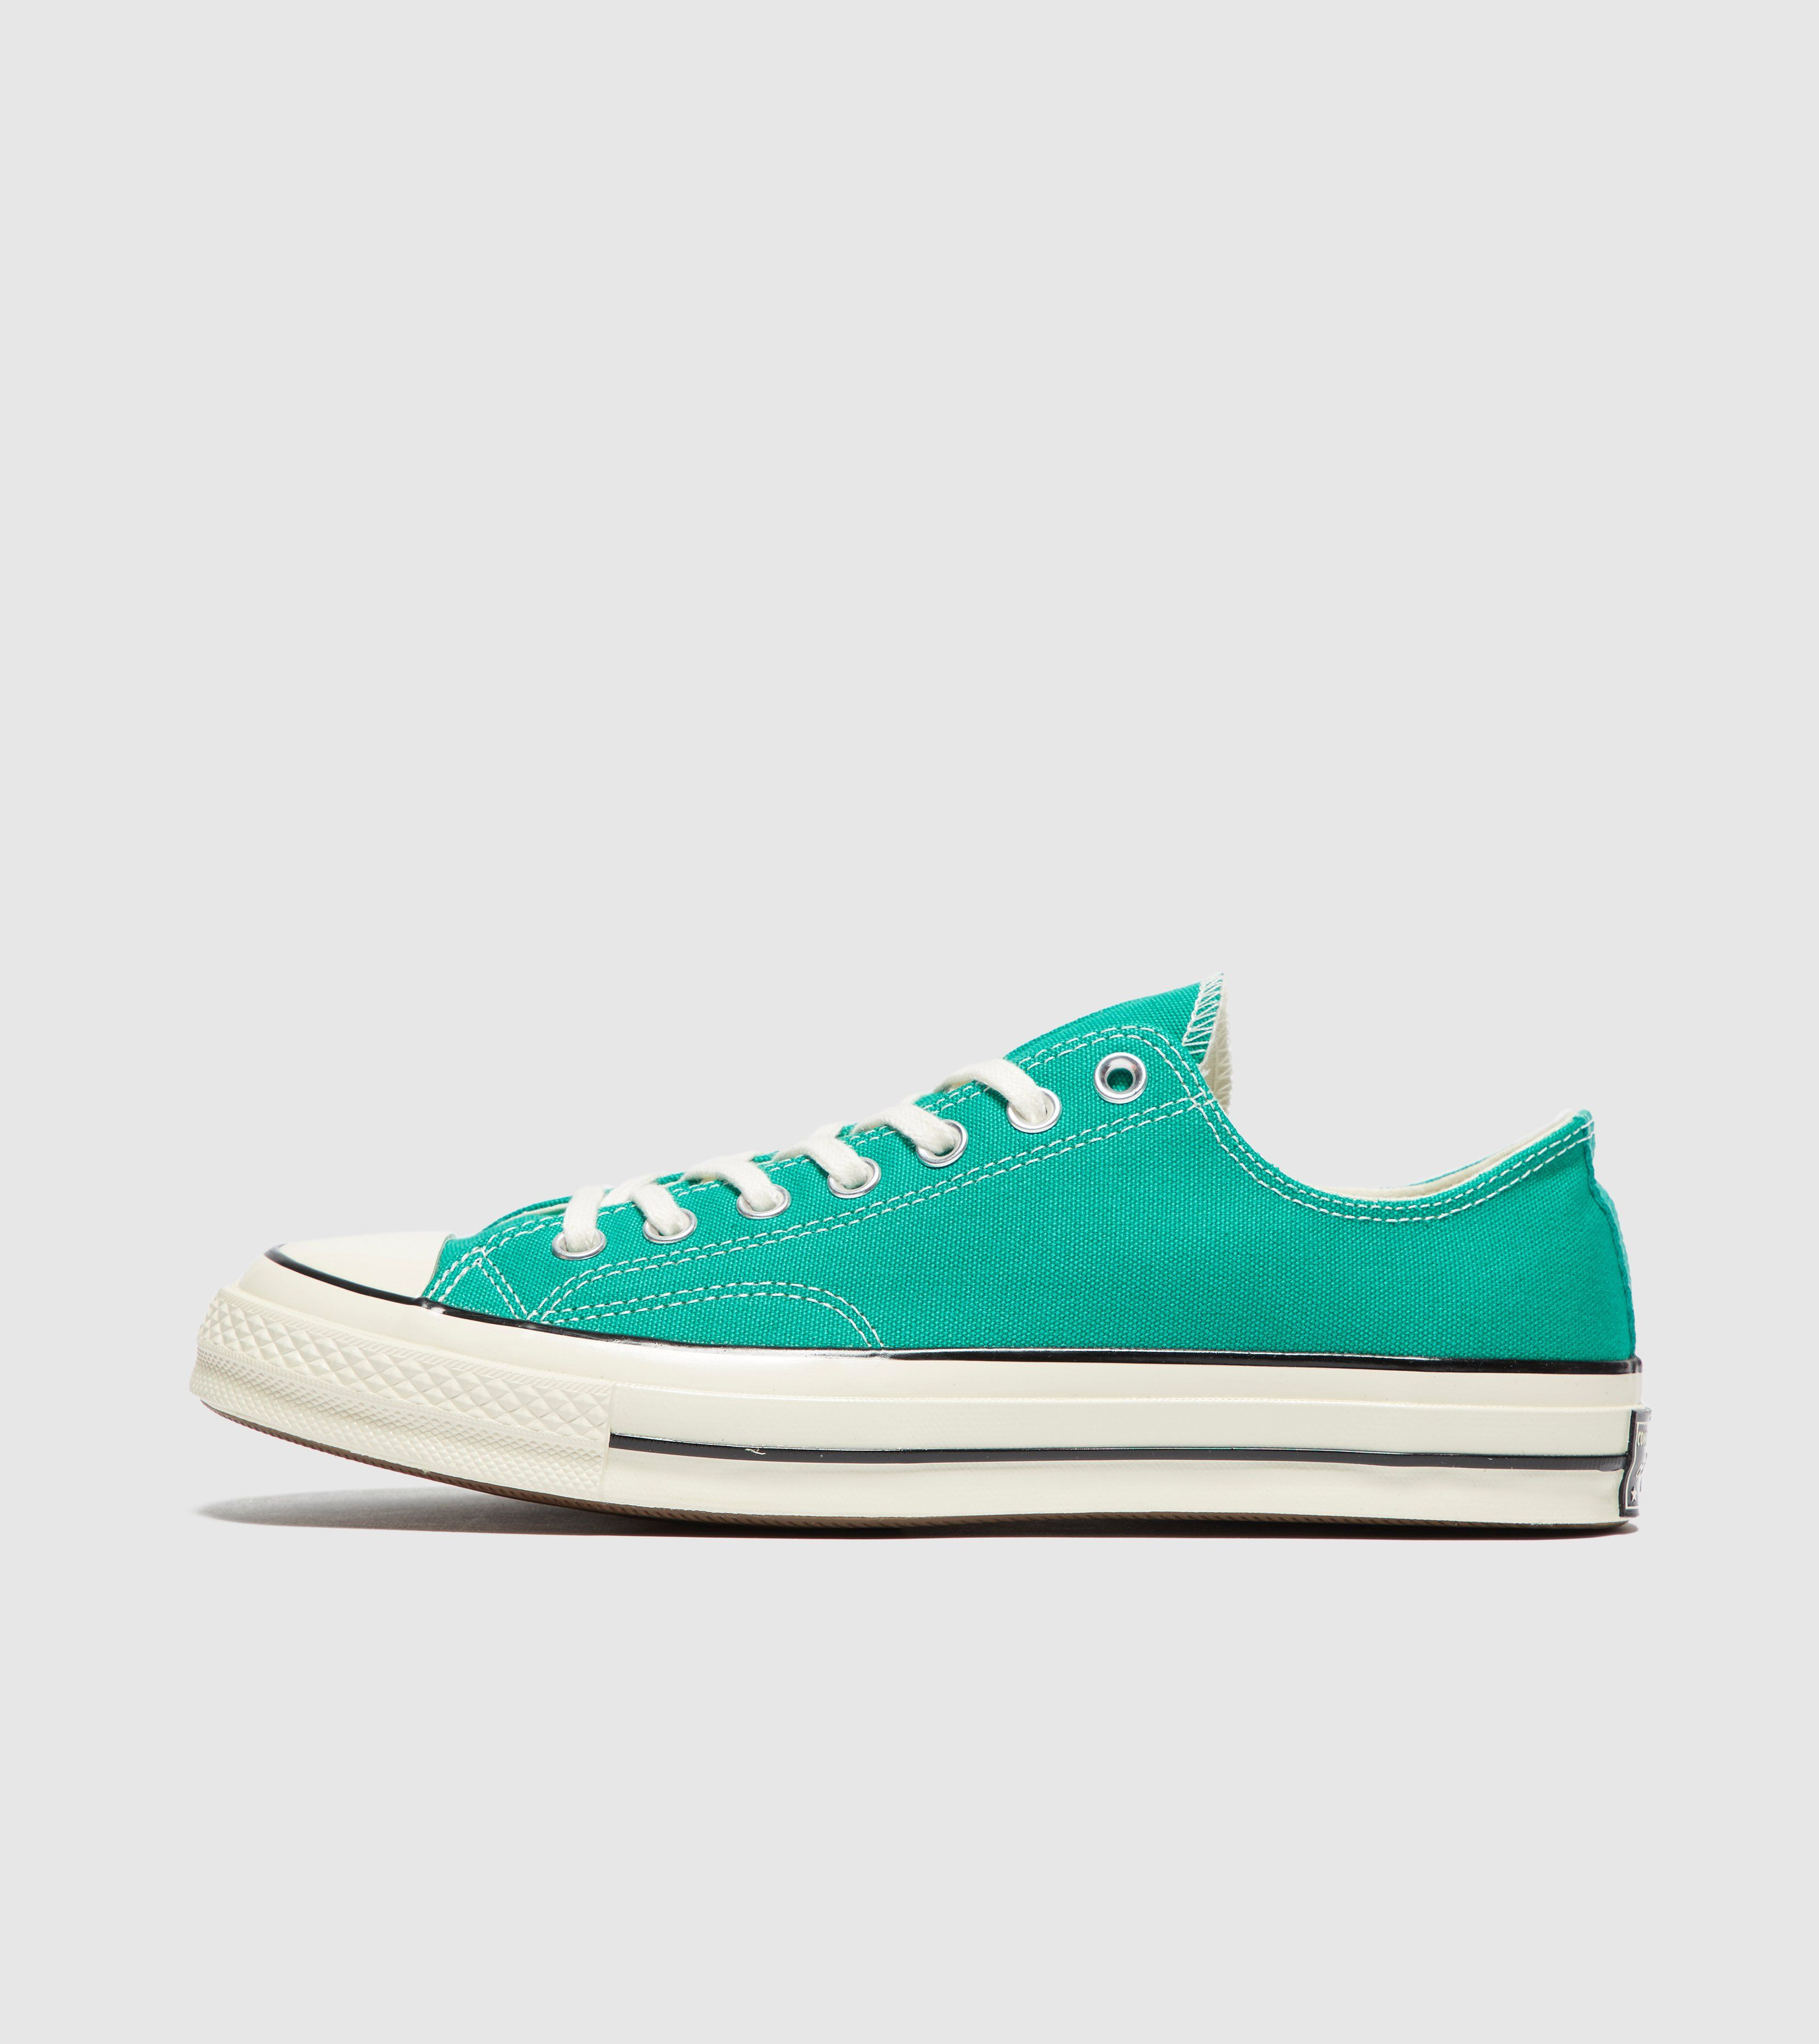 new arrival 5479e 92528 Converse All Star 70 s Ox Low